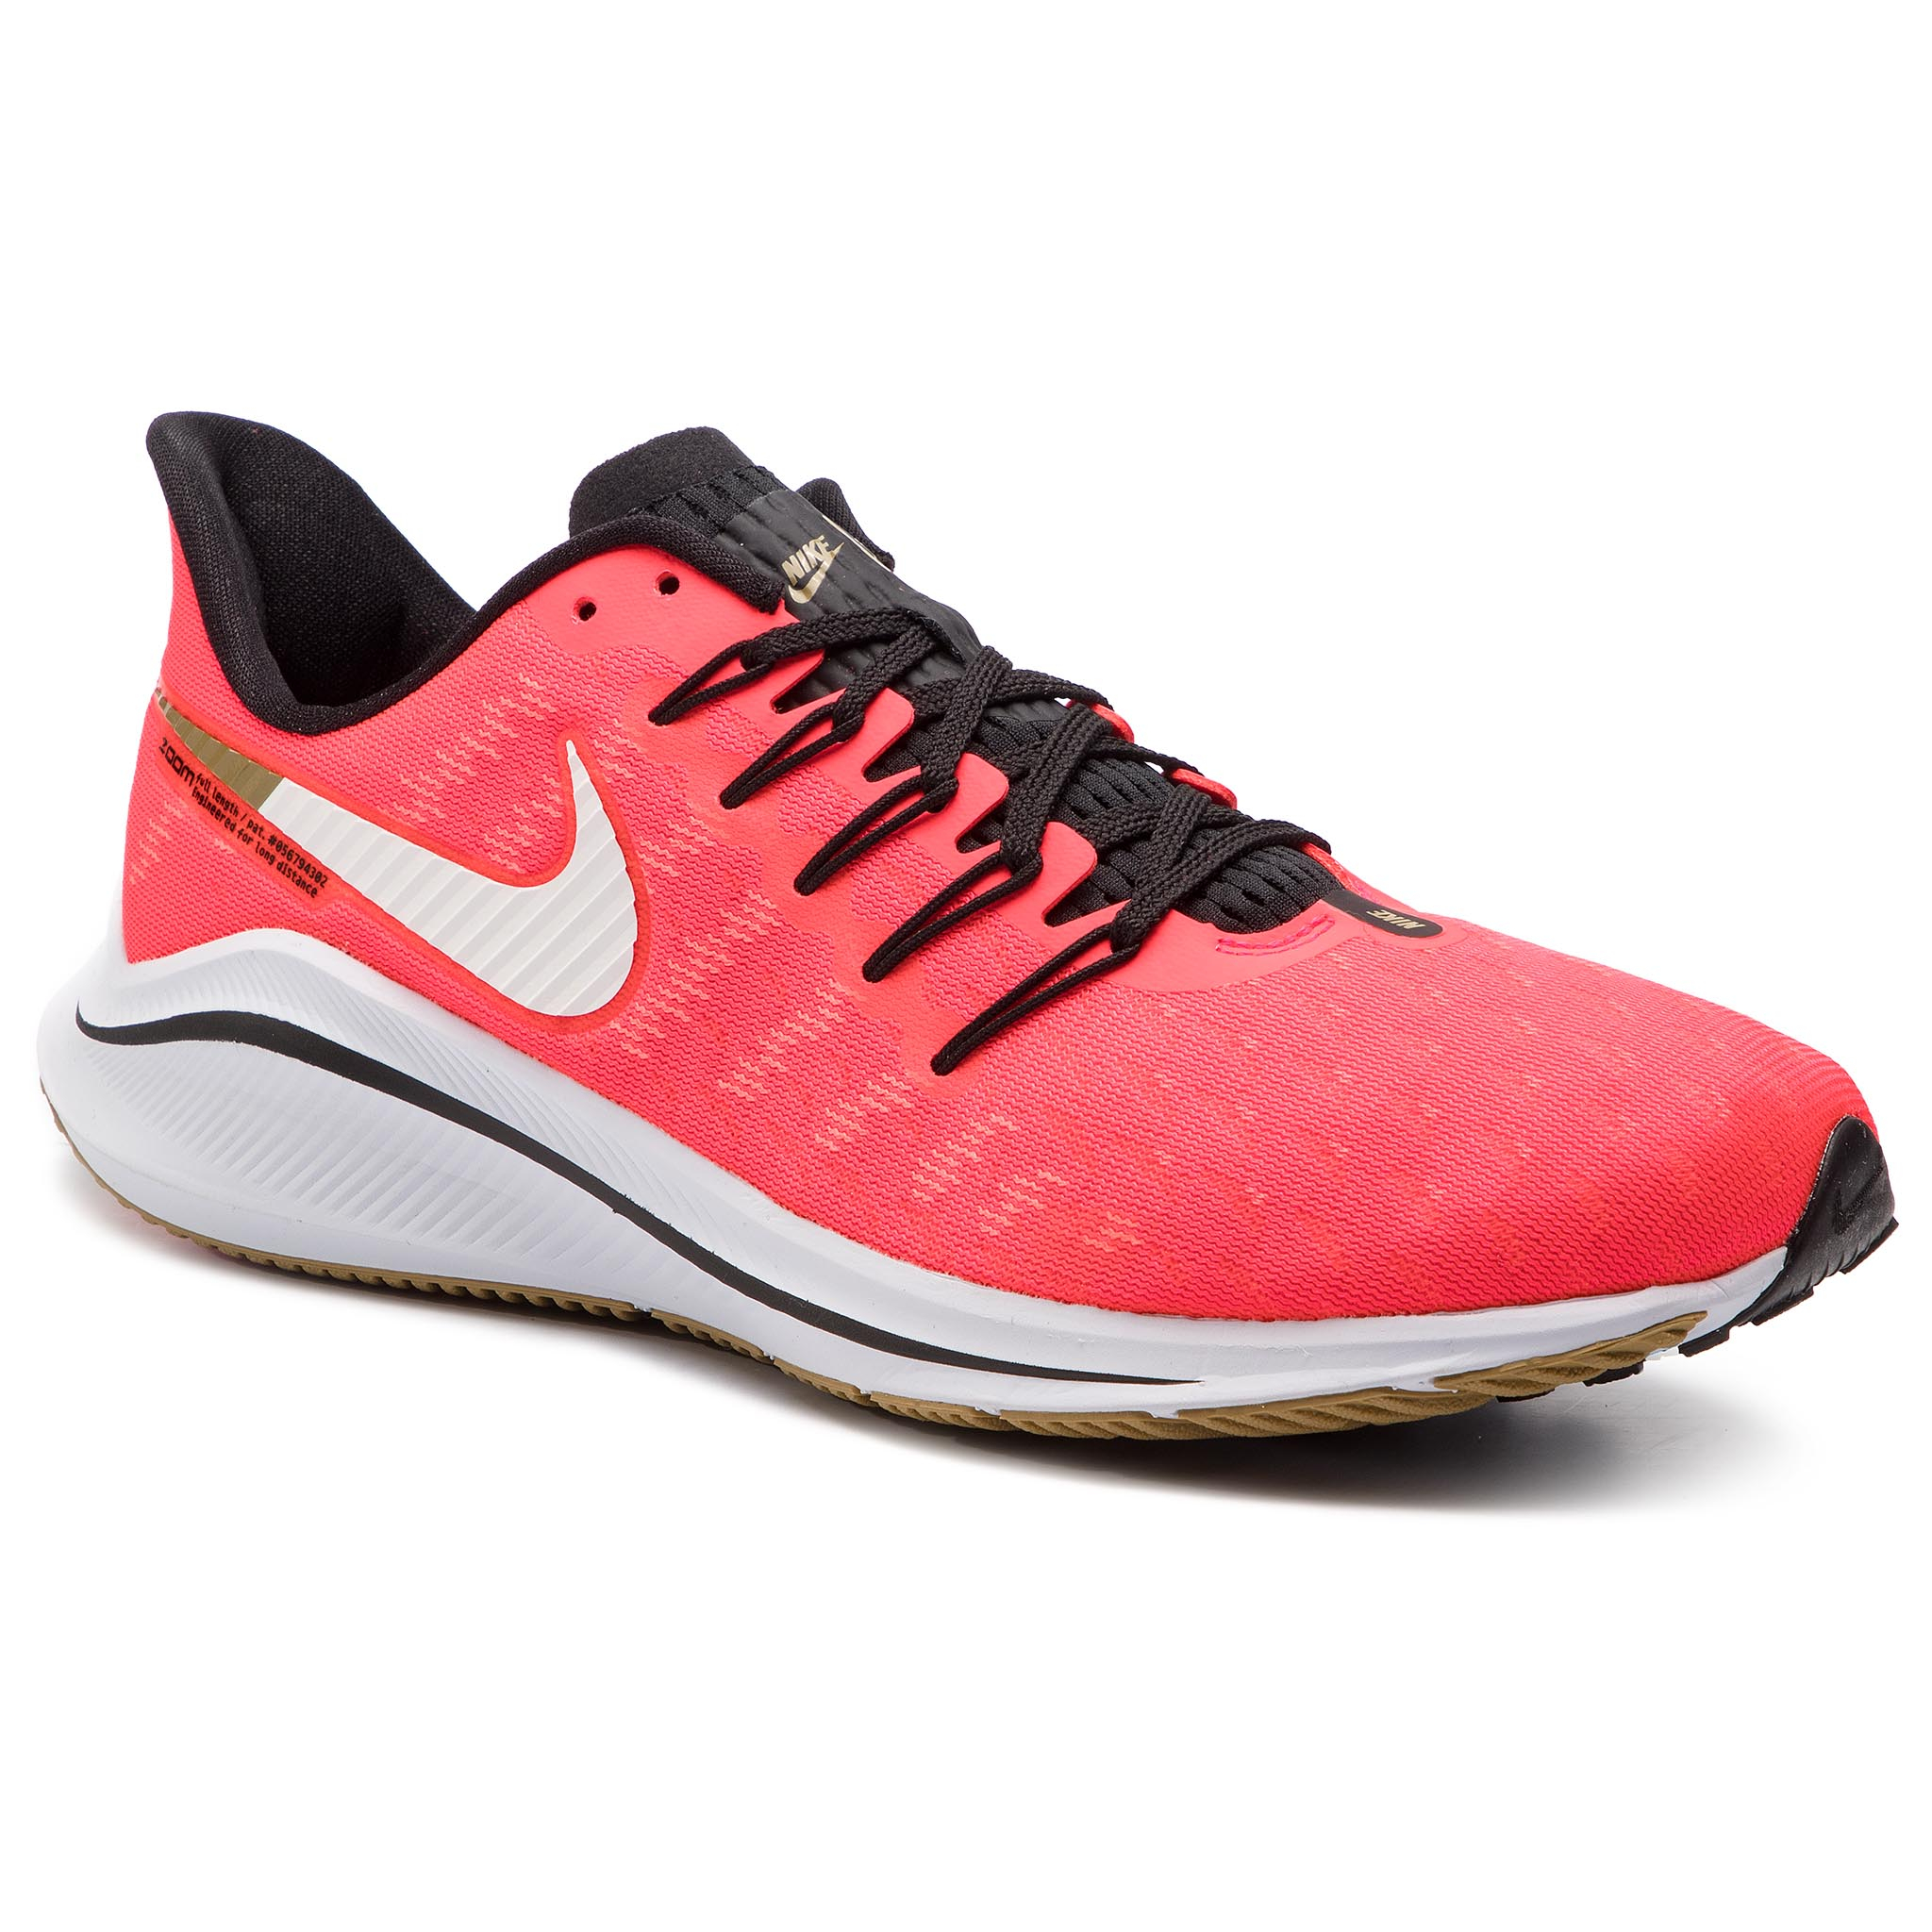 info for 82a62 30587 Shoes NIKE Air Zoom Vomero 14 AH7857 620 Red Orbit White Black